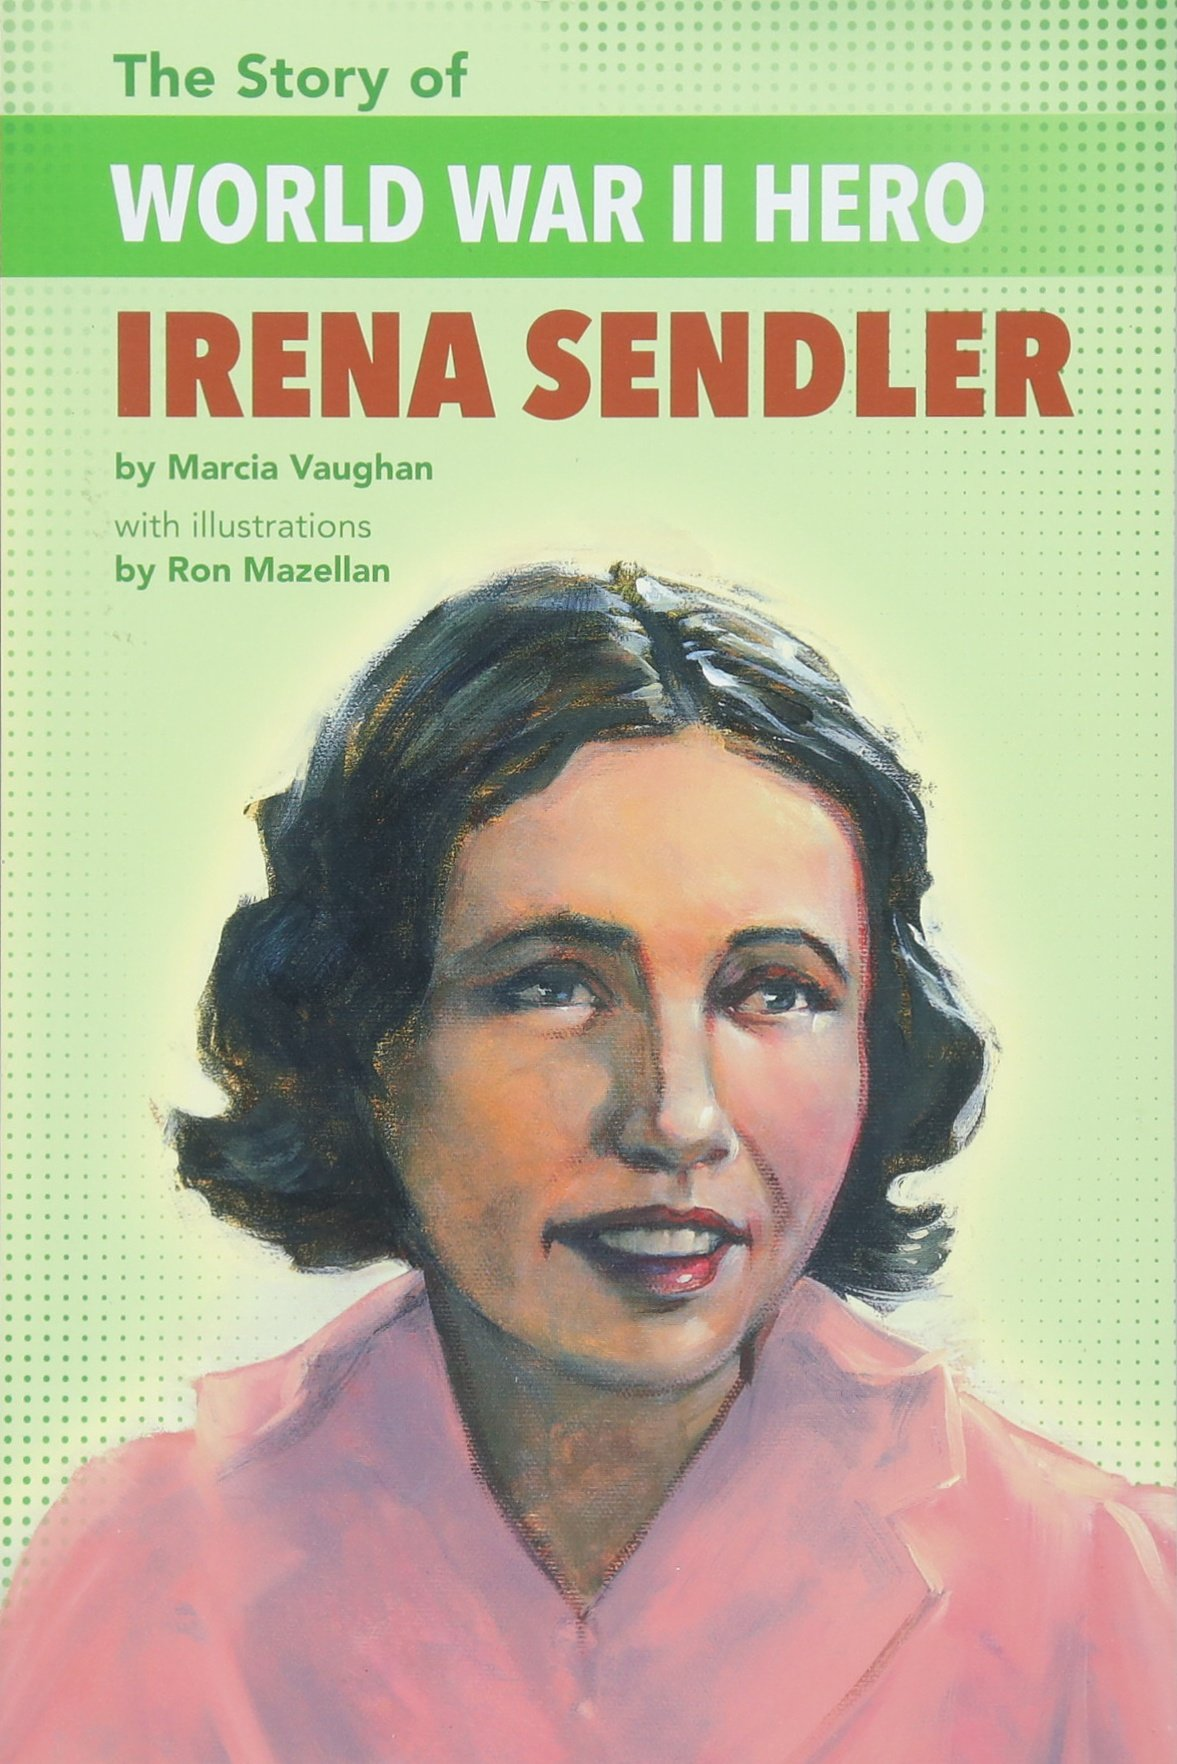 The Story of World War II Hero Irena Sendler